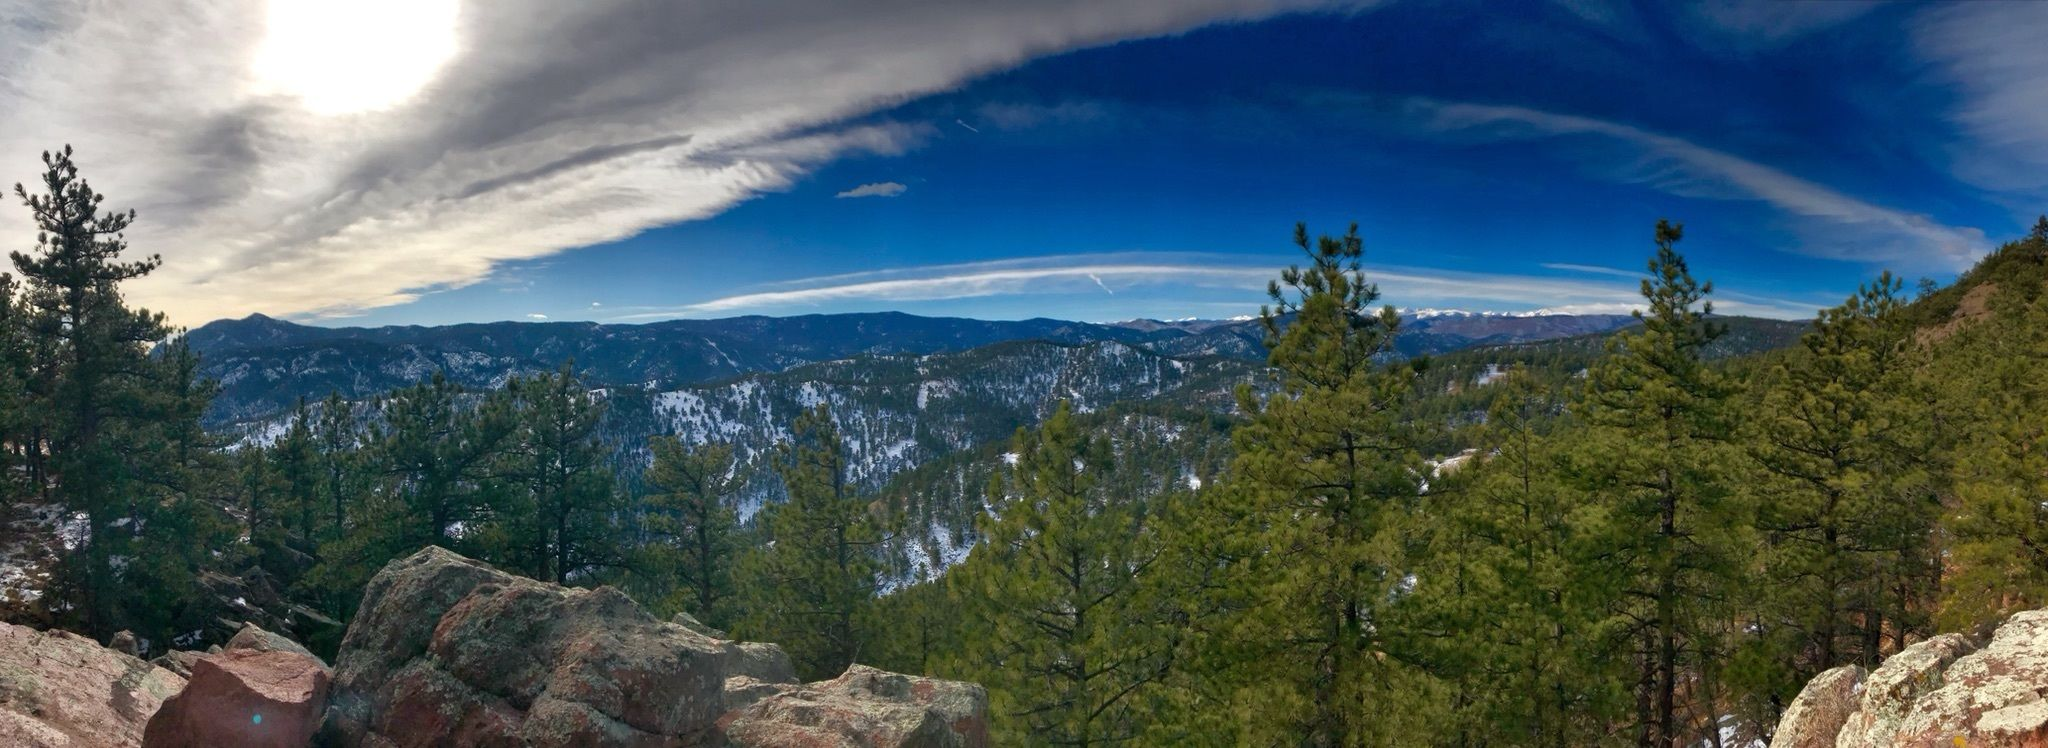 panoramic view from the Mount Sanitas Trail, blue skies, green trees and mountains in the background